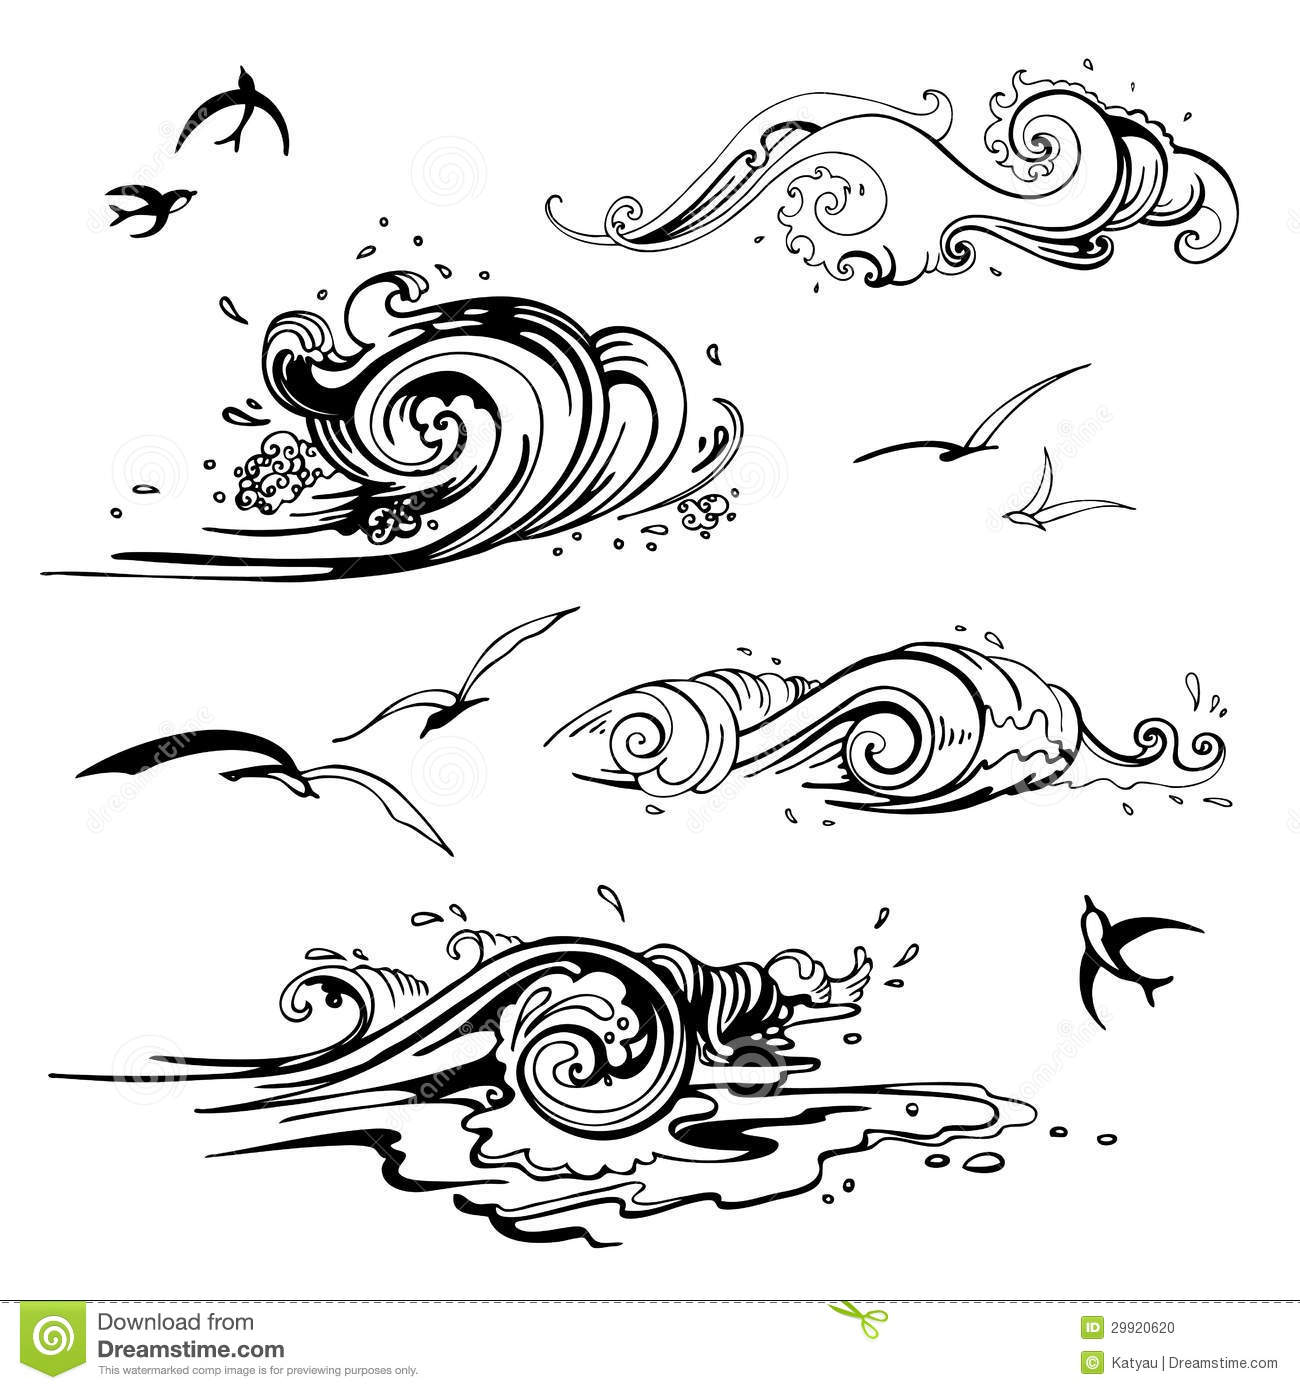 Gallery For gt Ocean Wave Drawing Black And White